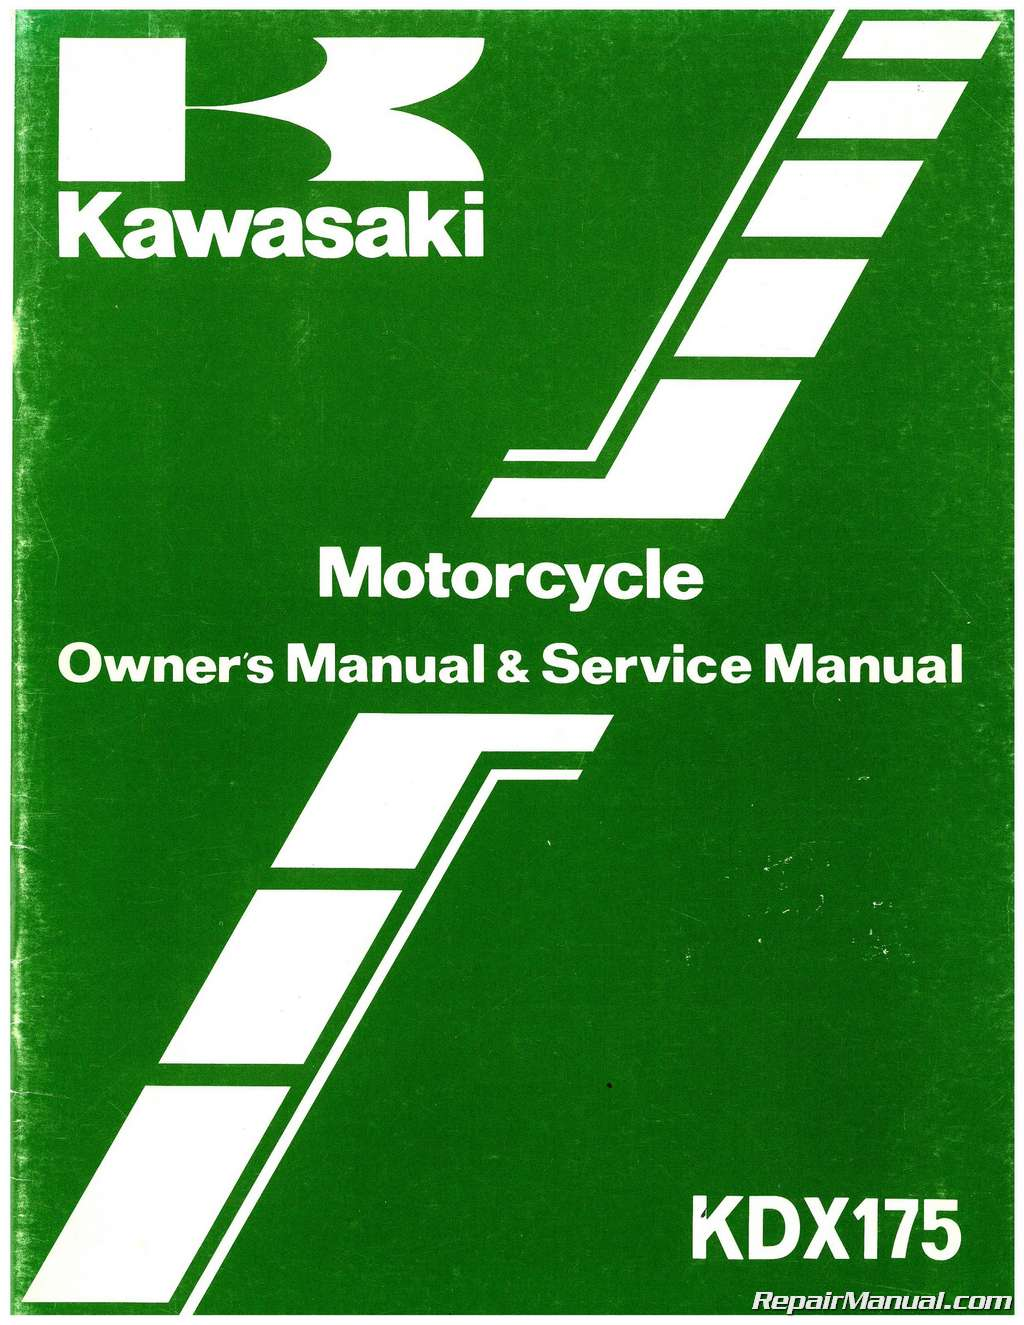 Kawasaki Kdx 175 Wiring Diagram - Wiring Diagrams on